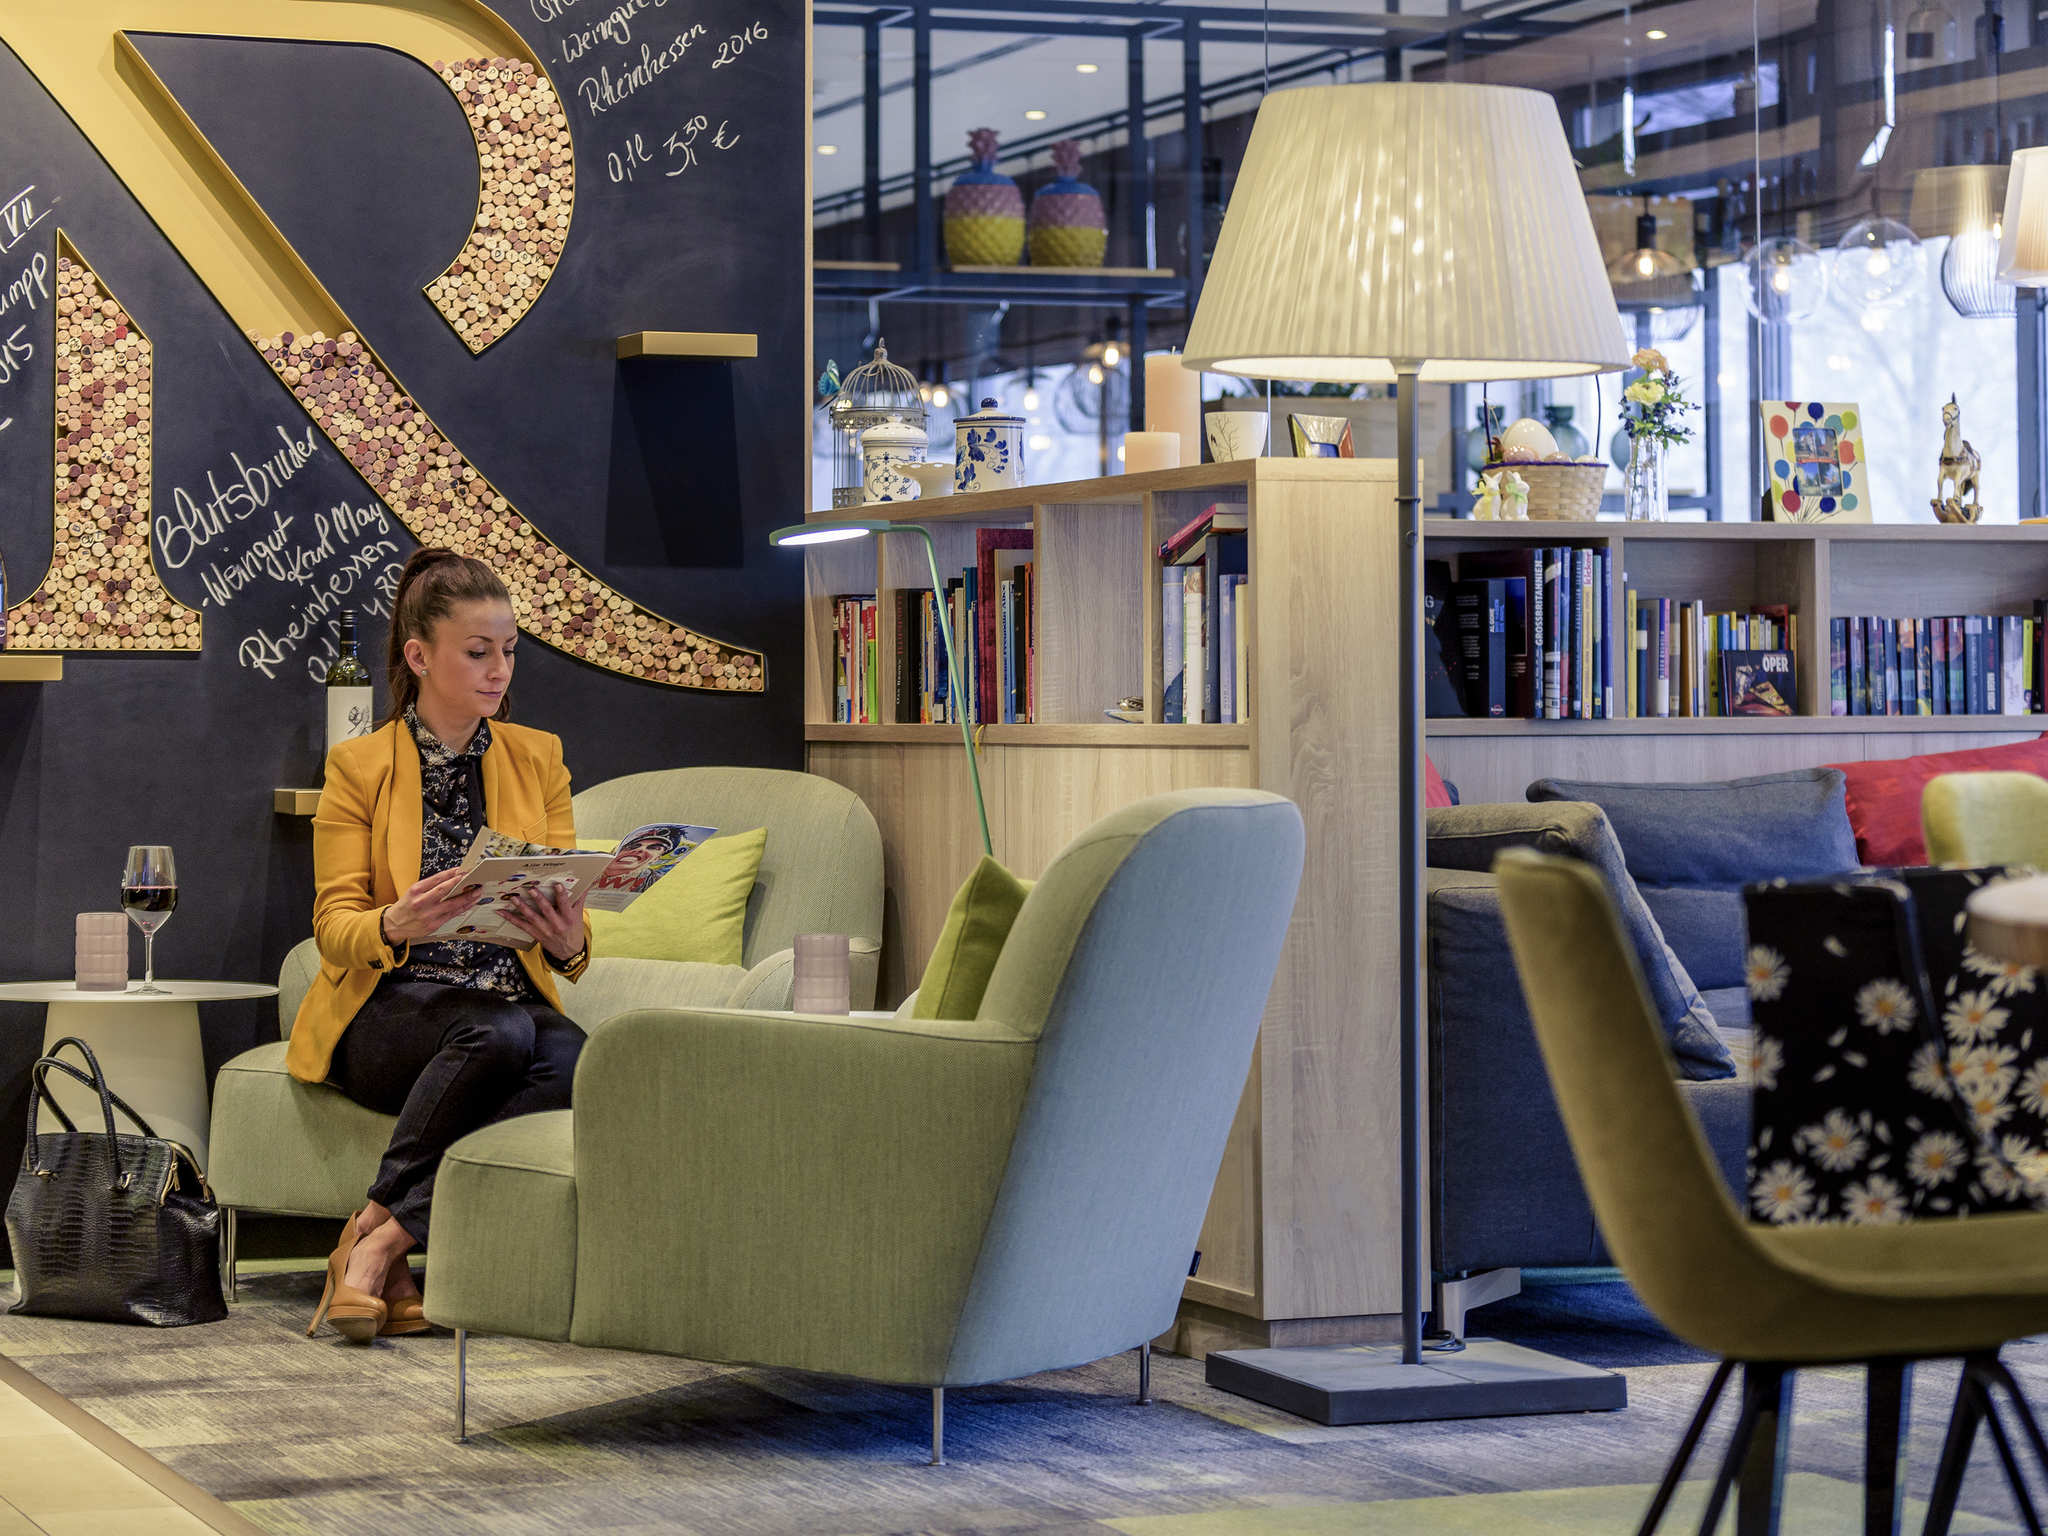 Mercure Hotel Hannover Mitt.Book now! Free Wifi! Sky TV!